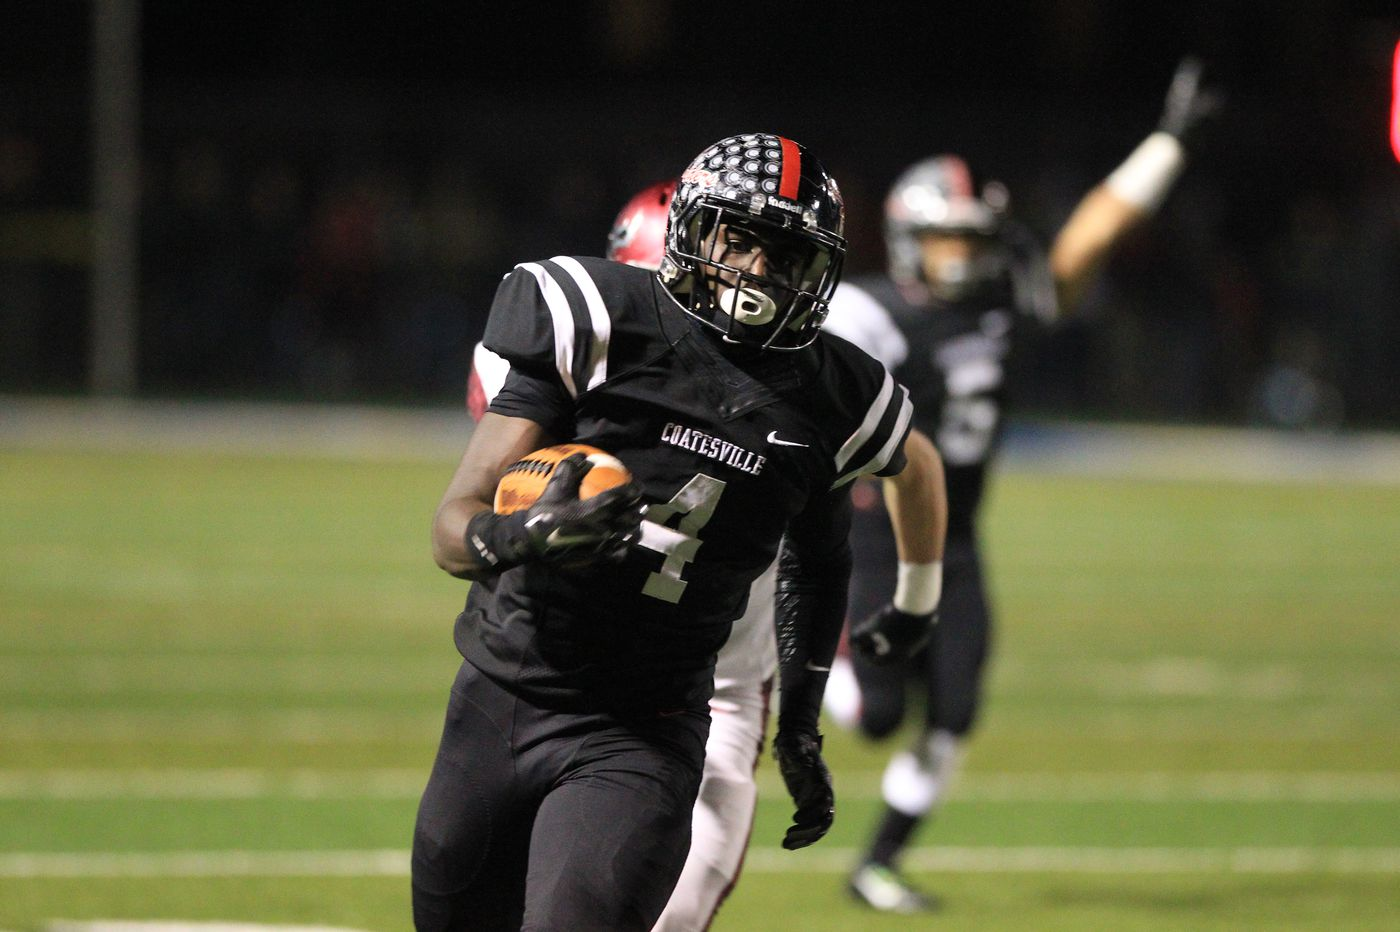 Friday's Southeastern Pa. football playoffs roundup: Radnor beats Marple Newtown in final seconds